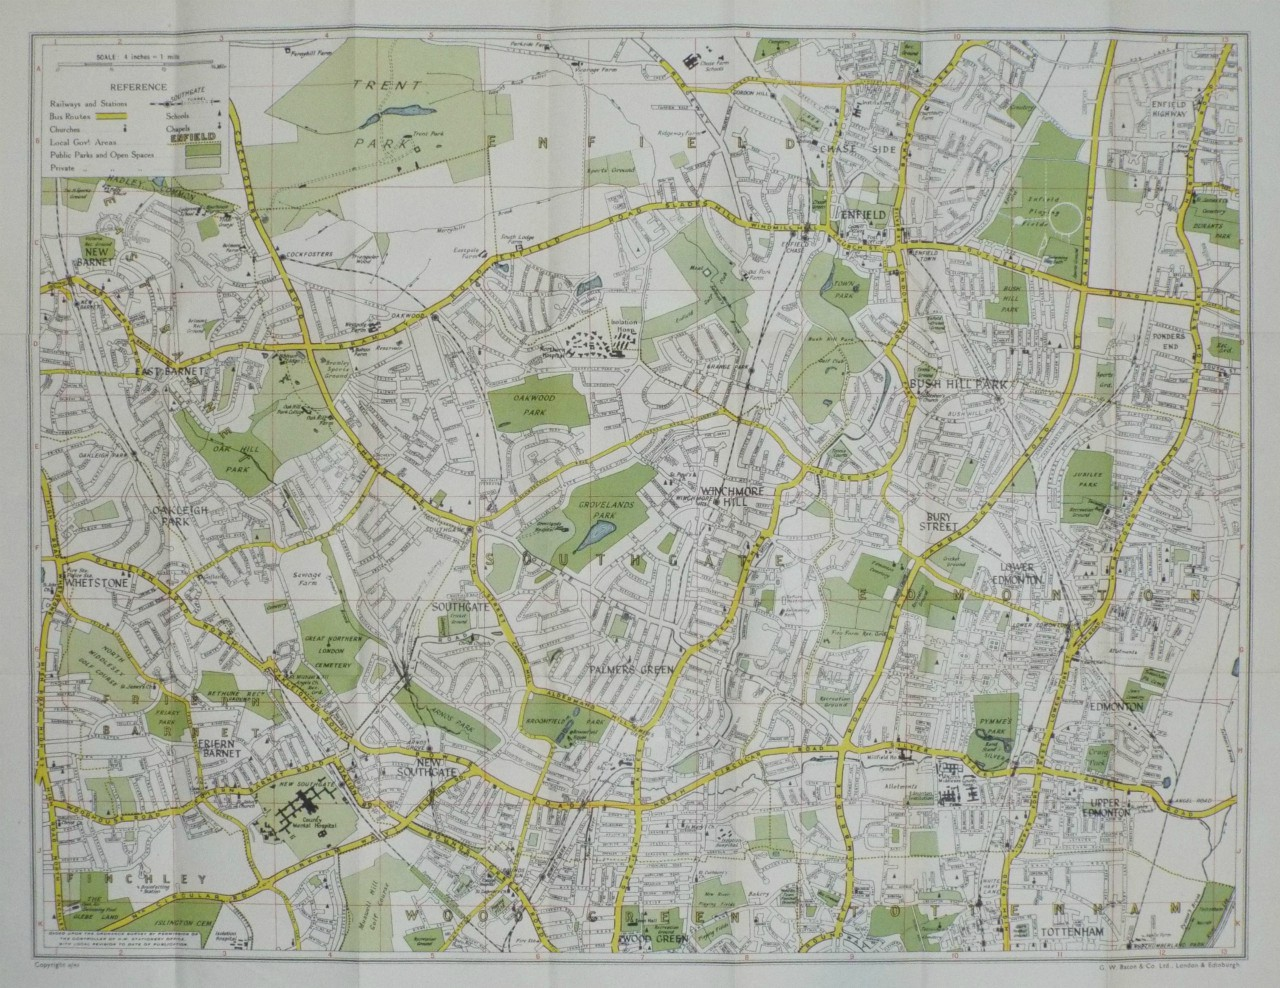 Map of Palmers Green - Southgate